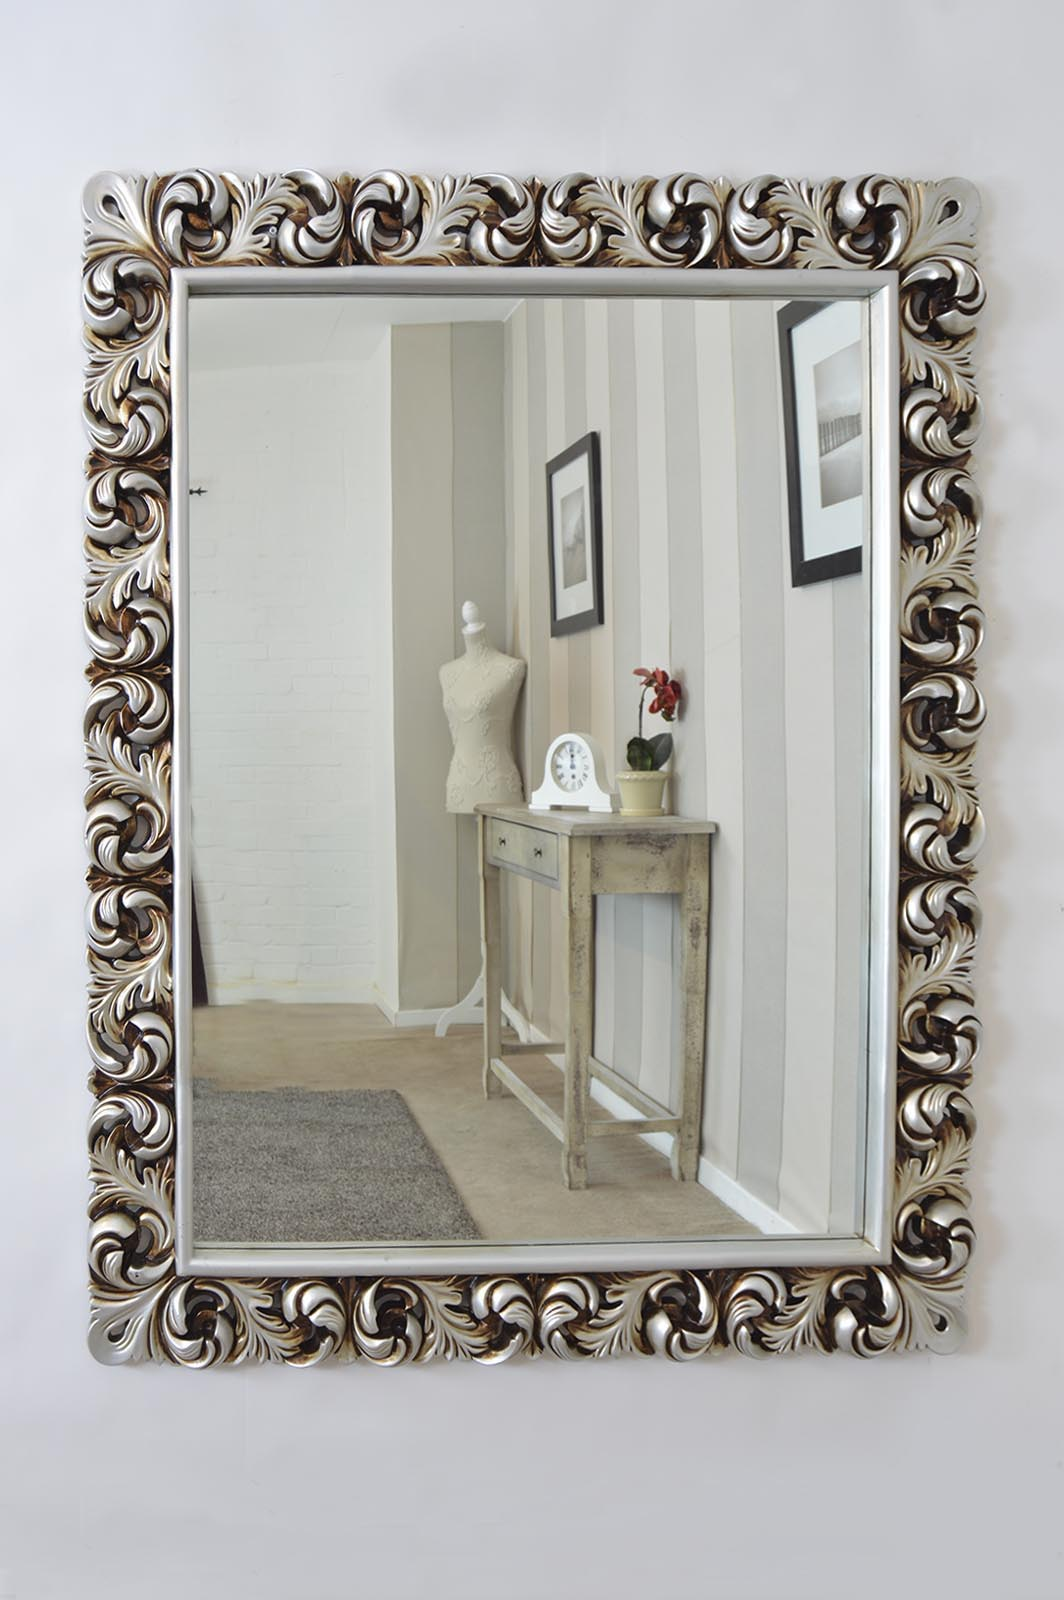 Antique style wall mirrors best decor things for Antique style wall mirror